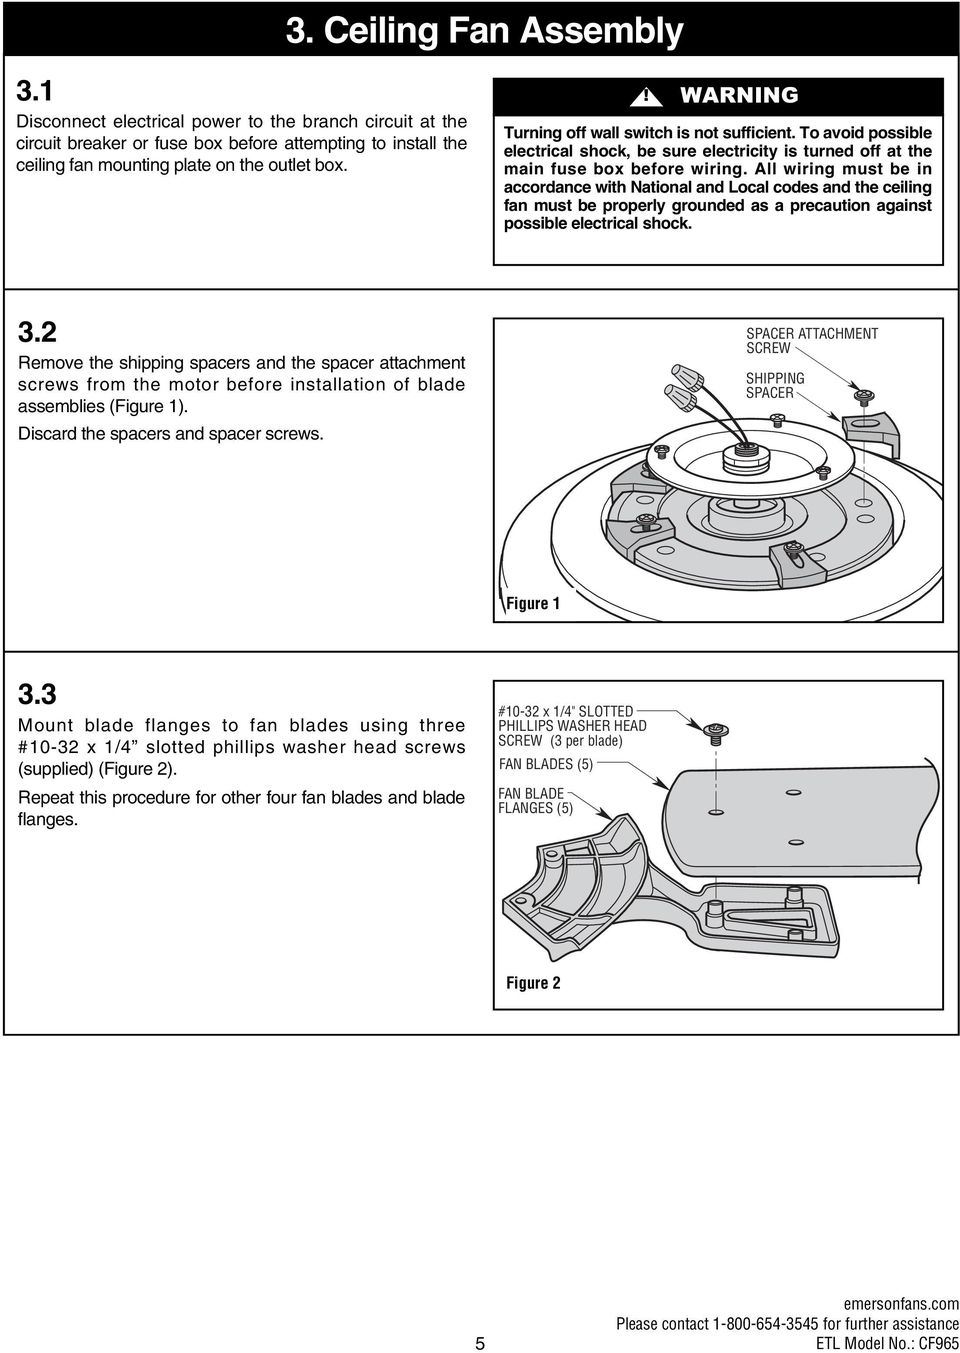 Read And Save These Instructions Portland 54 Ceiling Fan Owners Motor Electrical Wiring Diagram All Must Be In Accordance With National Local Codes The